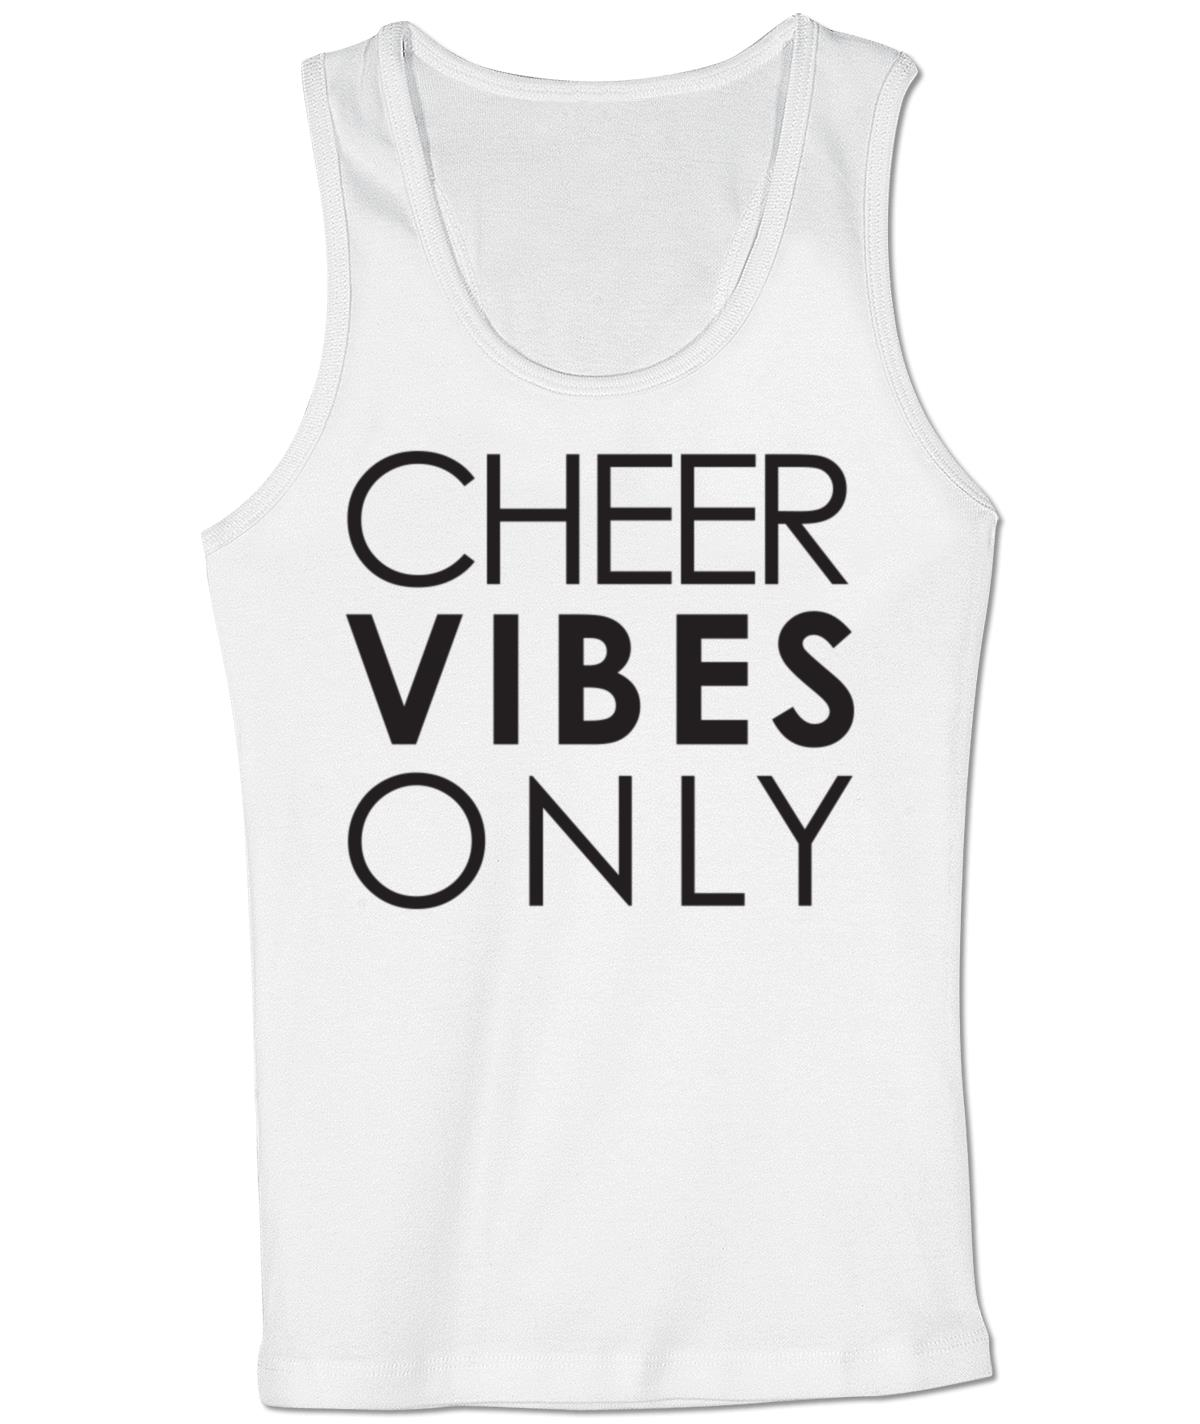 Cheer Vibes Only Tank